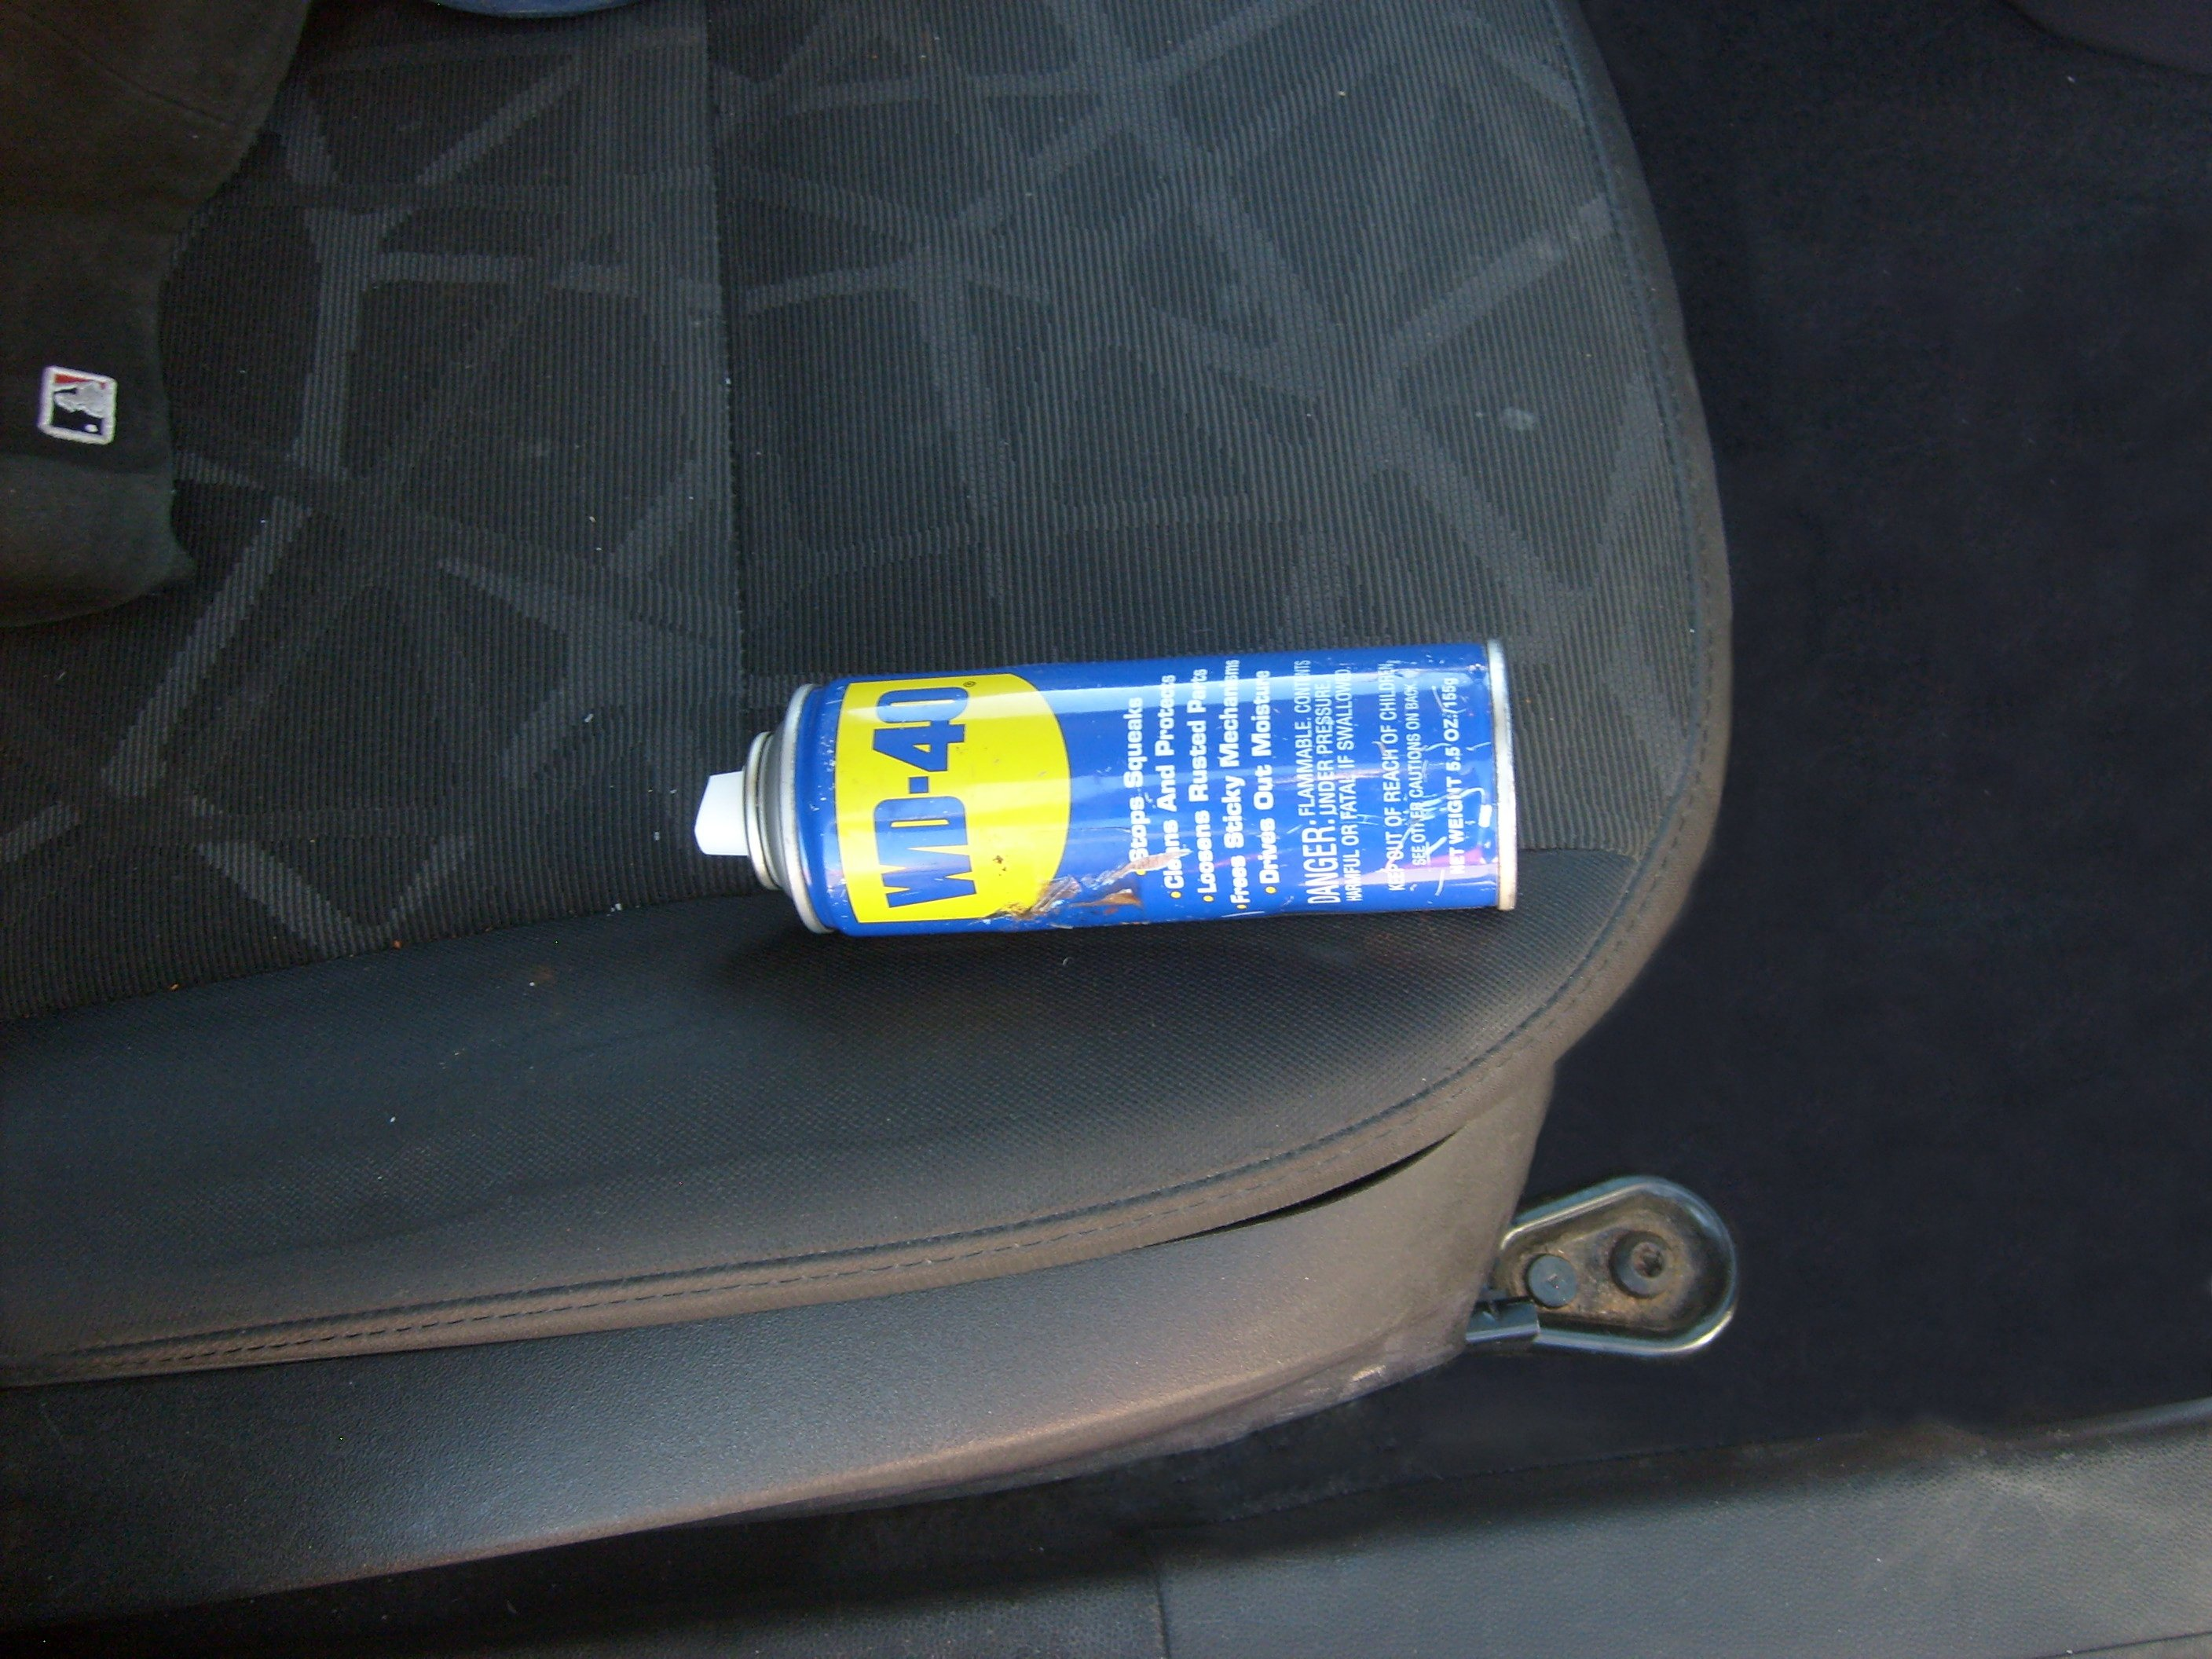 WD-40 can used to conceal contraband at SR 90 Checkpoint. (Courtesy: U.S. Customs and Border Protection)